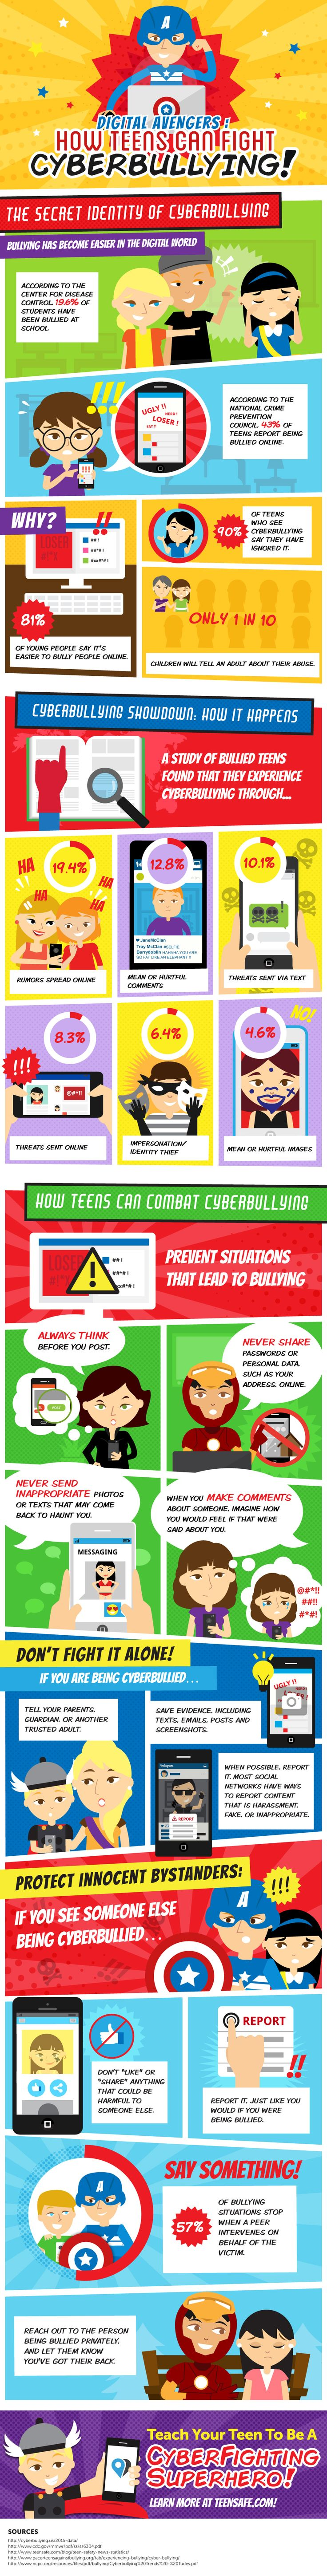 Help Your Kids Prevent Cyberbullying   MothersCircle.net